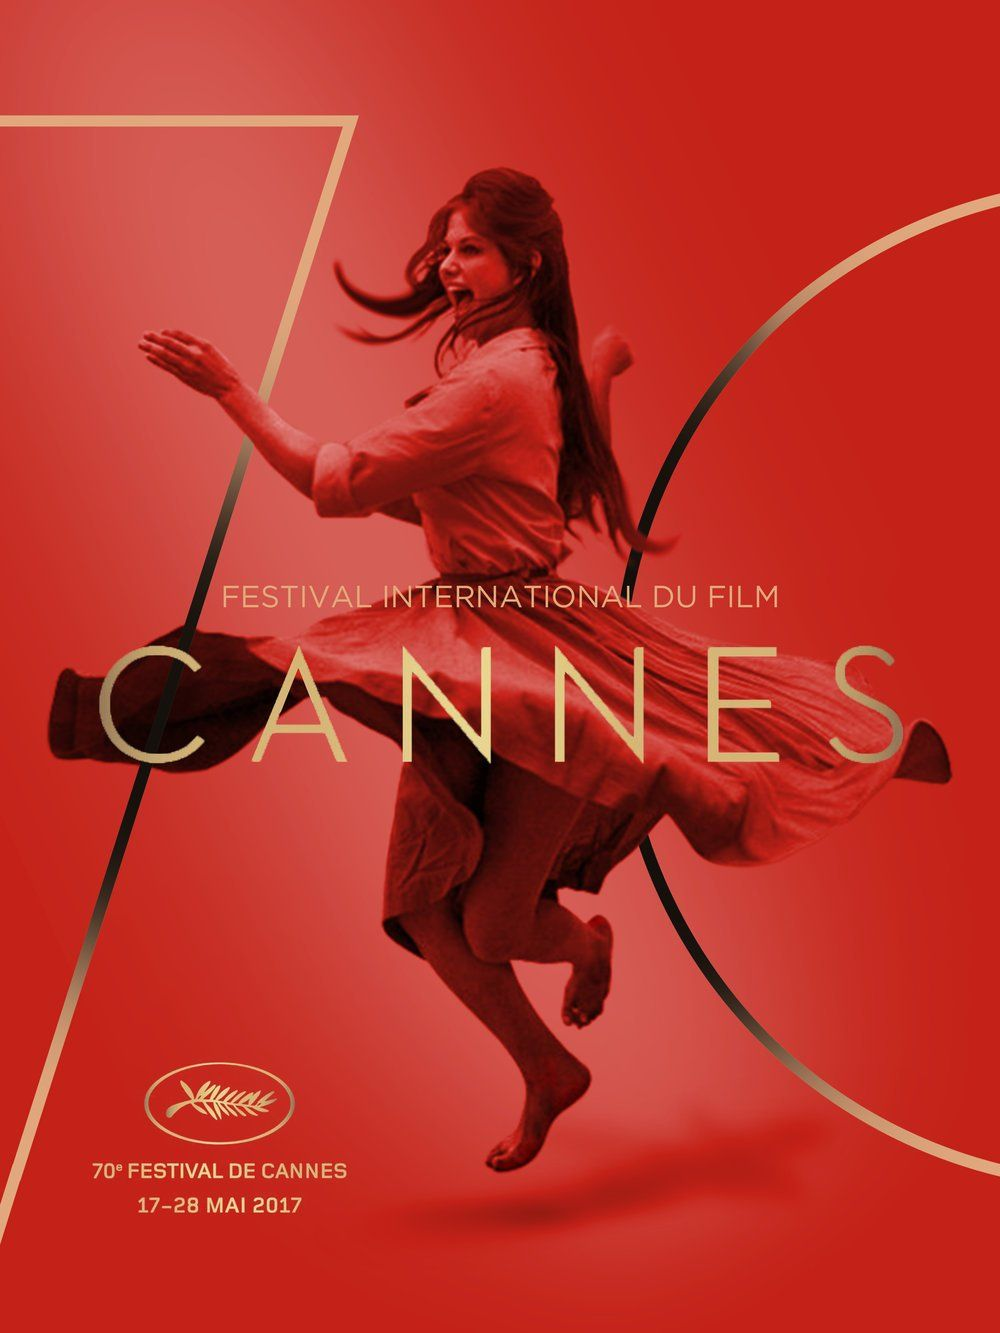 70-Cannes Film Festival Coverage